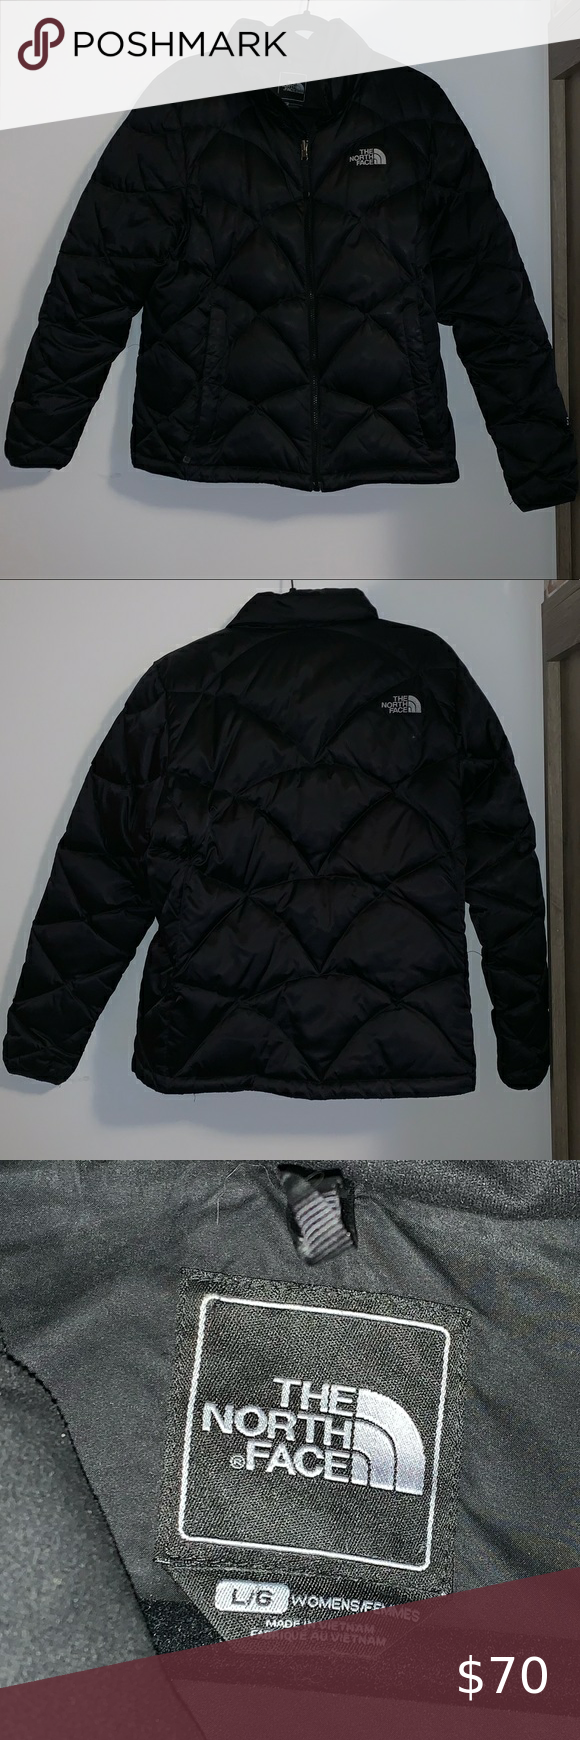 The North Face Puffer Jacket The North Face Black Cropped Puffer Jacket In Great Condi The North Face Puffer Jacket North Face Puffer Jacket North Face Puffer [ 1740 x 580 Pixel ]